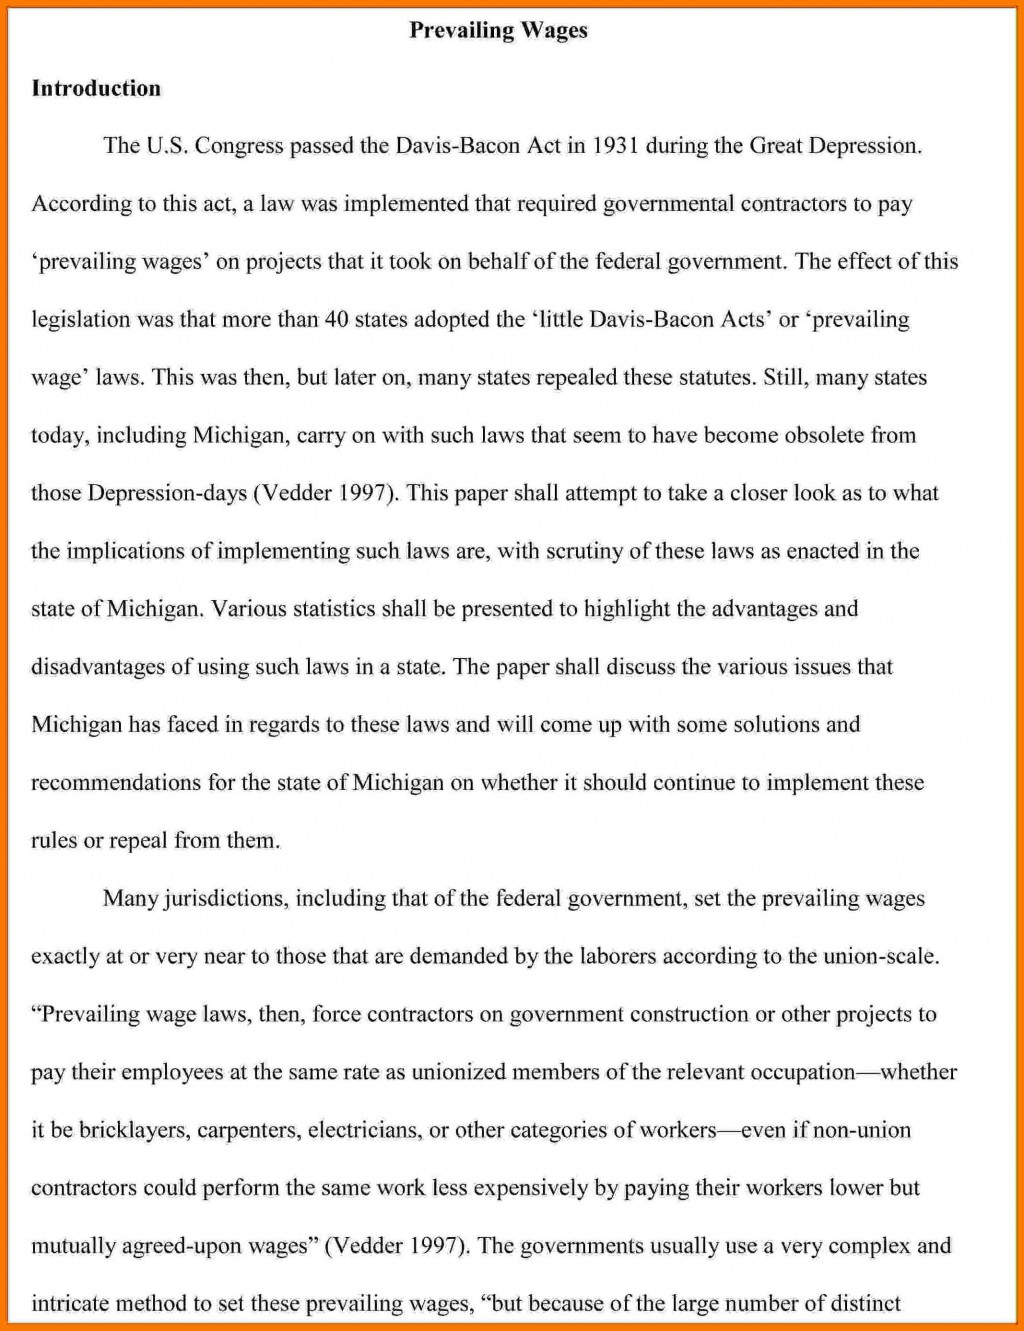 002 Example Of Research Paper Introduction Collection Solutions Apa Wonderful A About Bullying Psychology Scientific Large